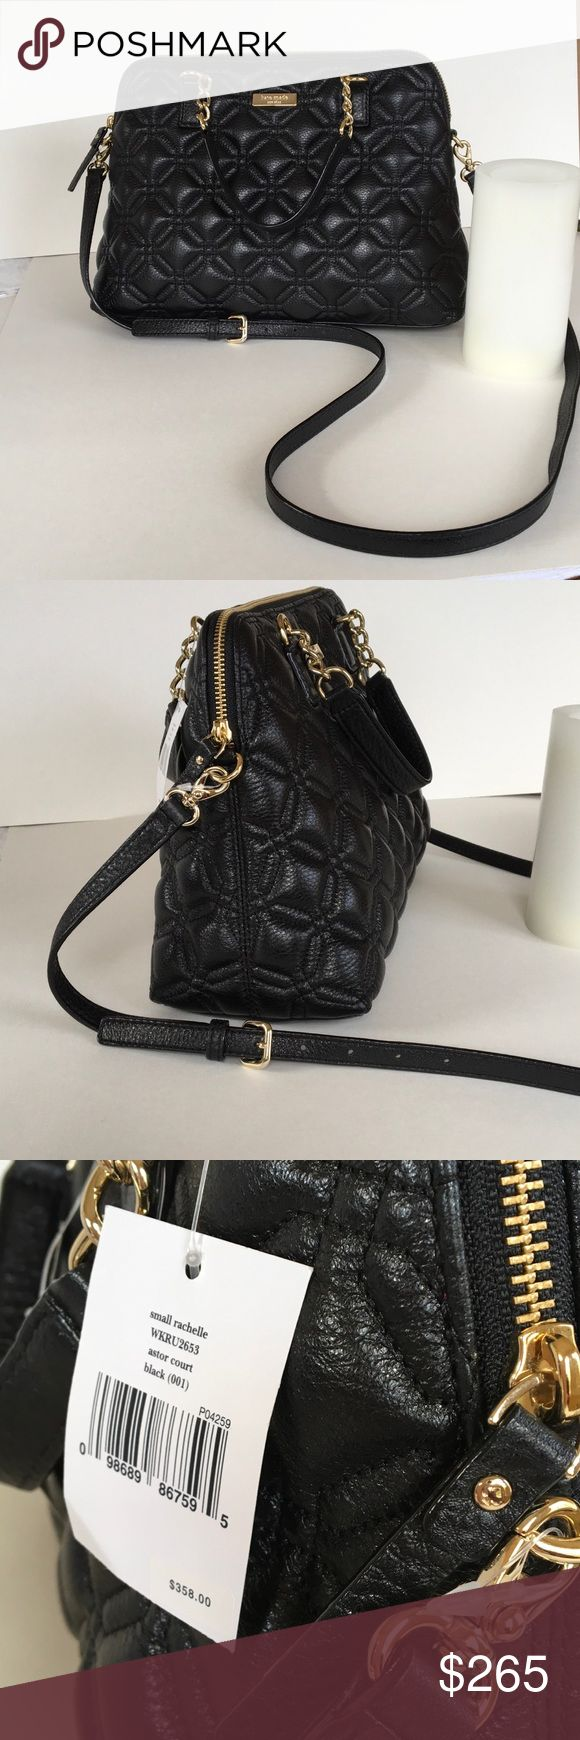 Kate Spade ♠️ ❤️Astor Court handbag, NEW Kate Spade small Rachelle Astor Court in black quilted exterior with hot pink interior, gold tone hardware. Pristine!  This looks like the love child between a Chanel bag and a Louis Vuitton Alma. It's an instant classic!!❤️❤️❤️ kate spade Bags Satchels